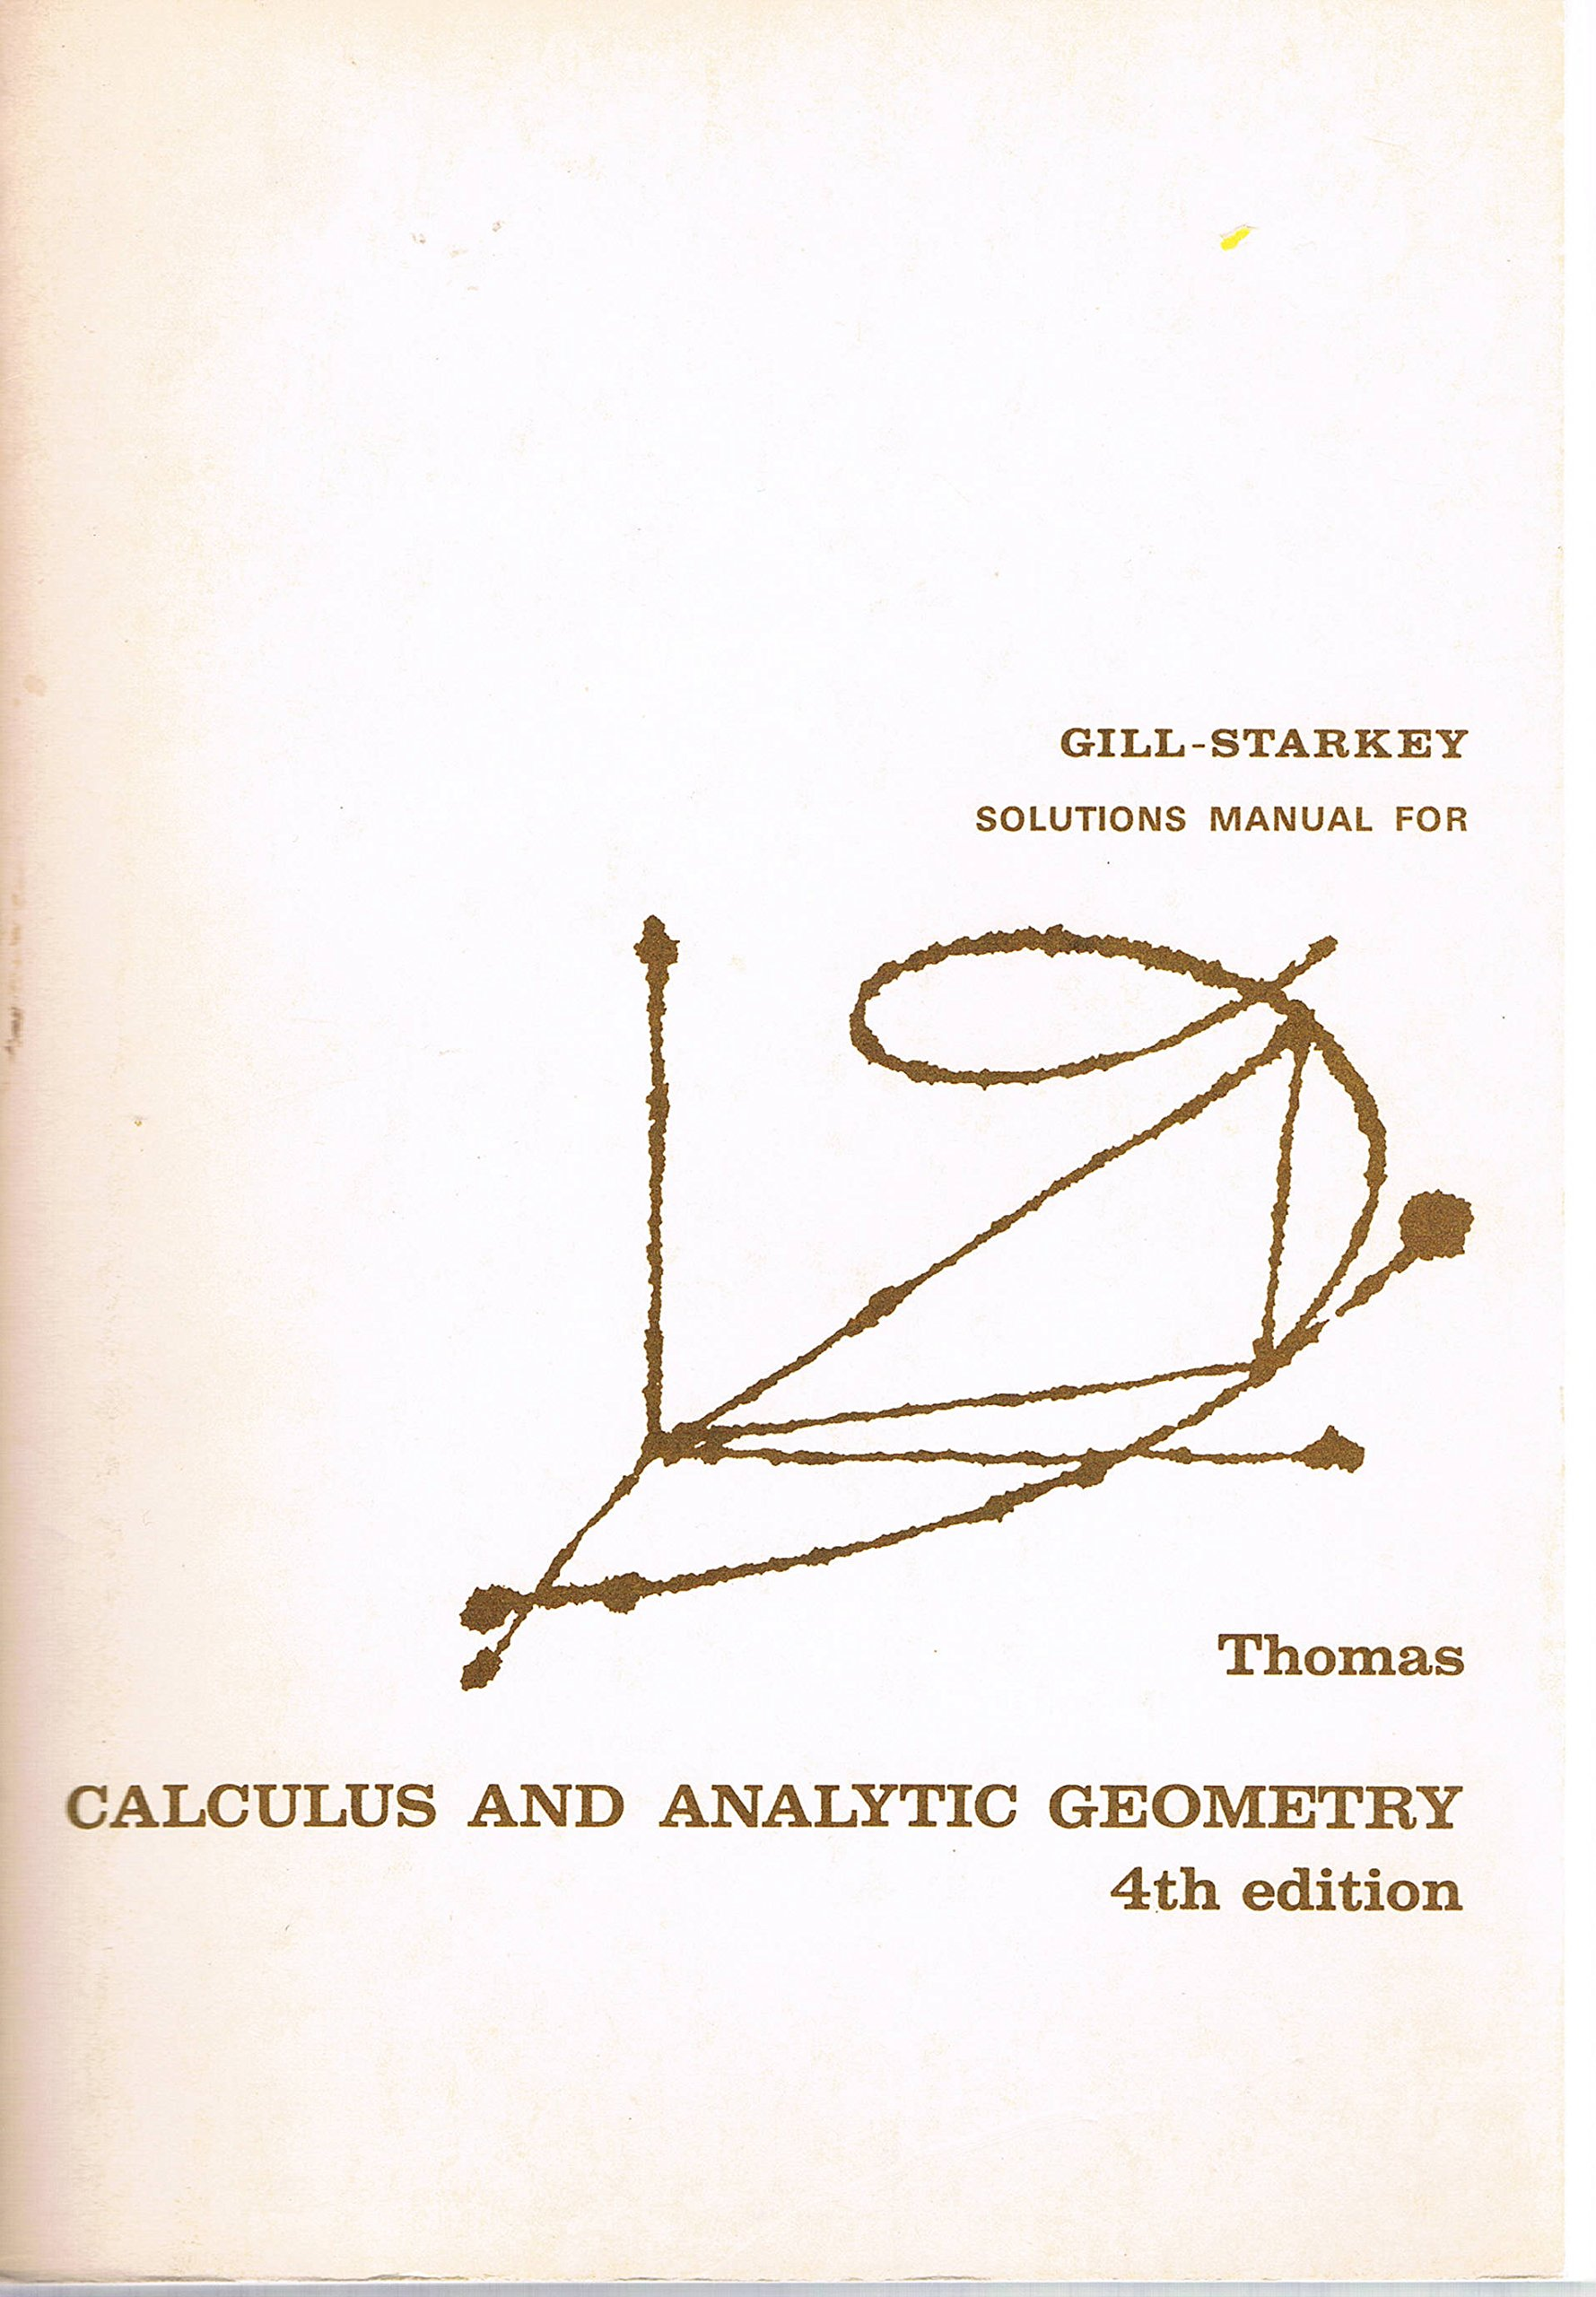 Solutions Manual for Calculus and Analytic Geometry: Jr. George B. Thomas,  G. S. Gill, Robert L. Starkey: Amazon.com: Books